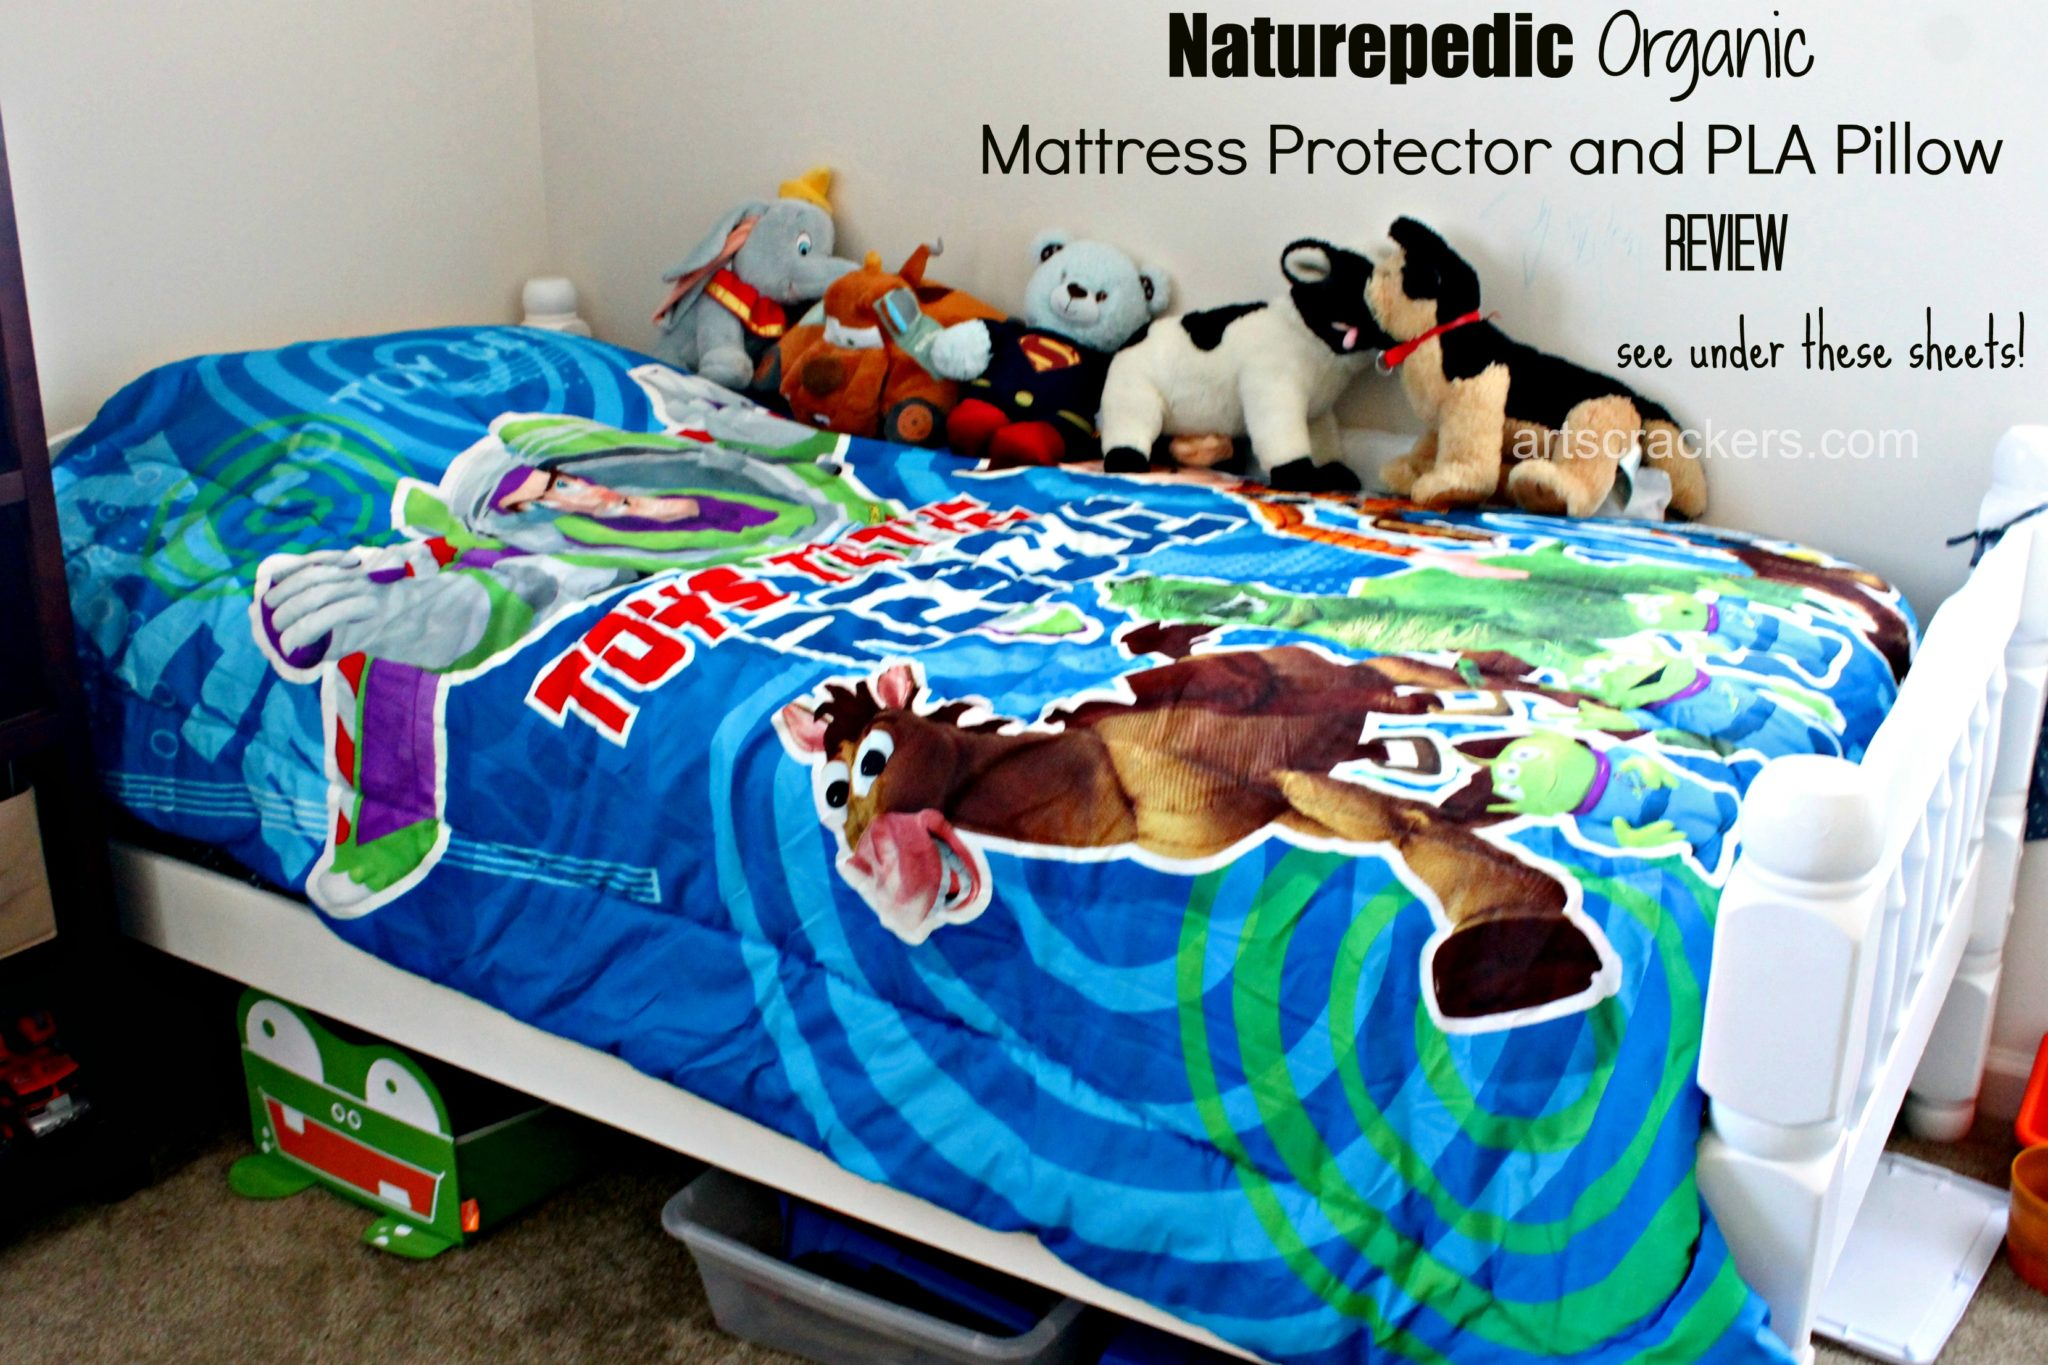 Naturepedic Bedding Review See Under These Sheets. Click the picture to read more.